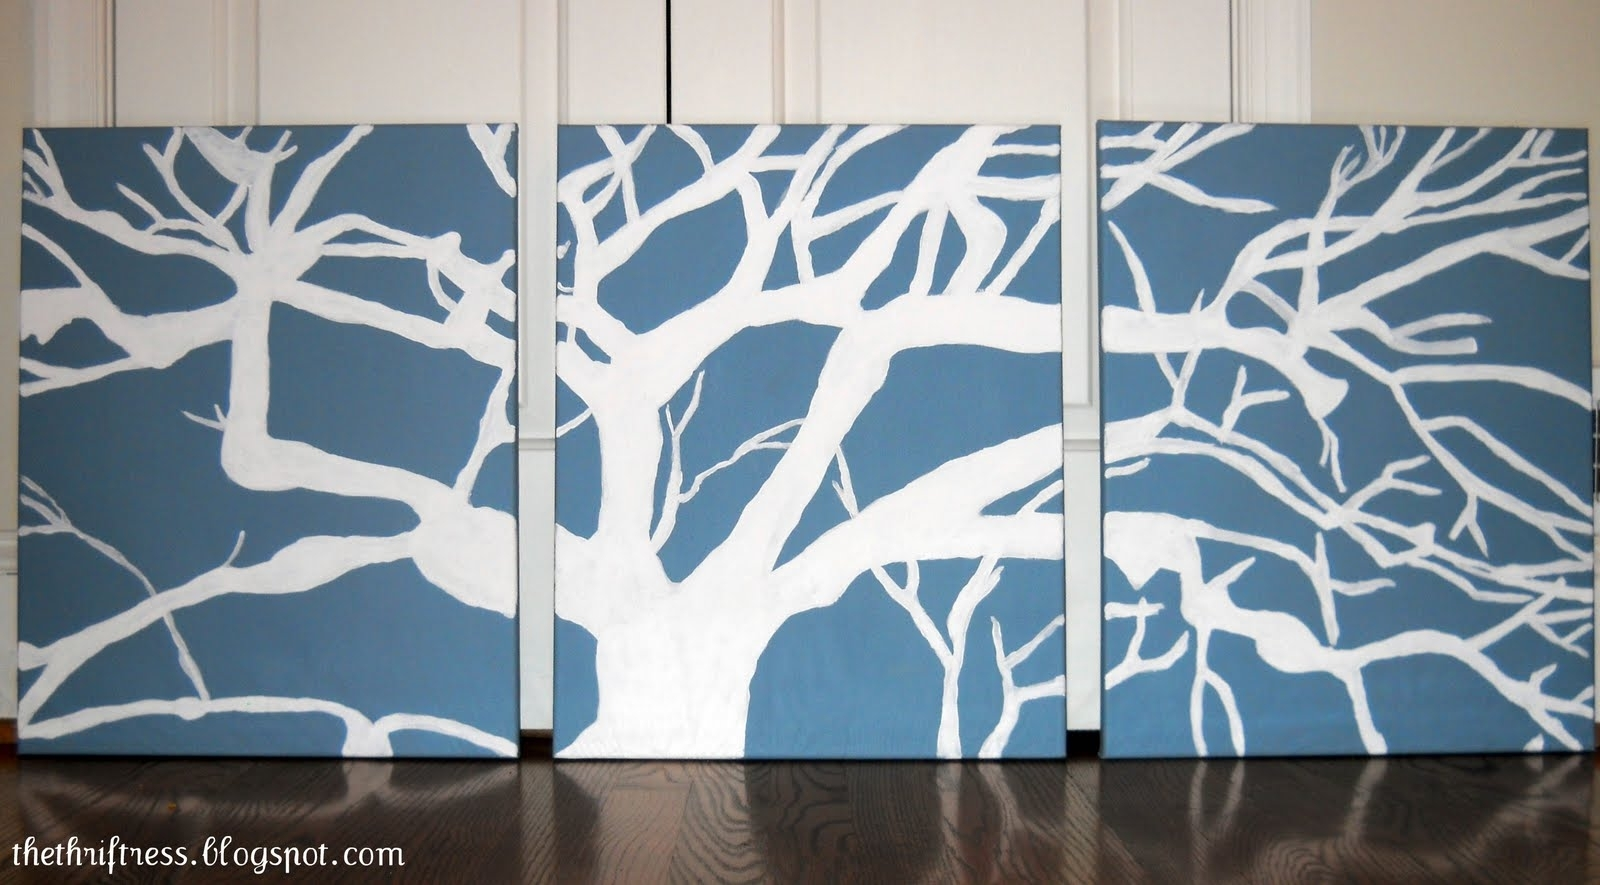 Diy Wall Art Stencils Paint Fabric – Dma Homes | #37854 Inside Newest Large Fabric Wall Art (Gallery 13 of 15)